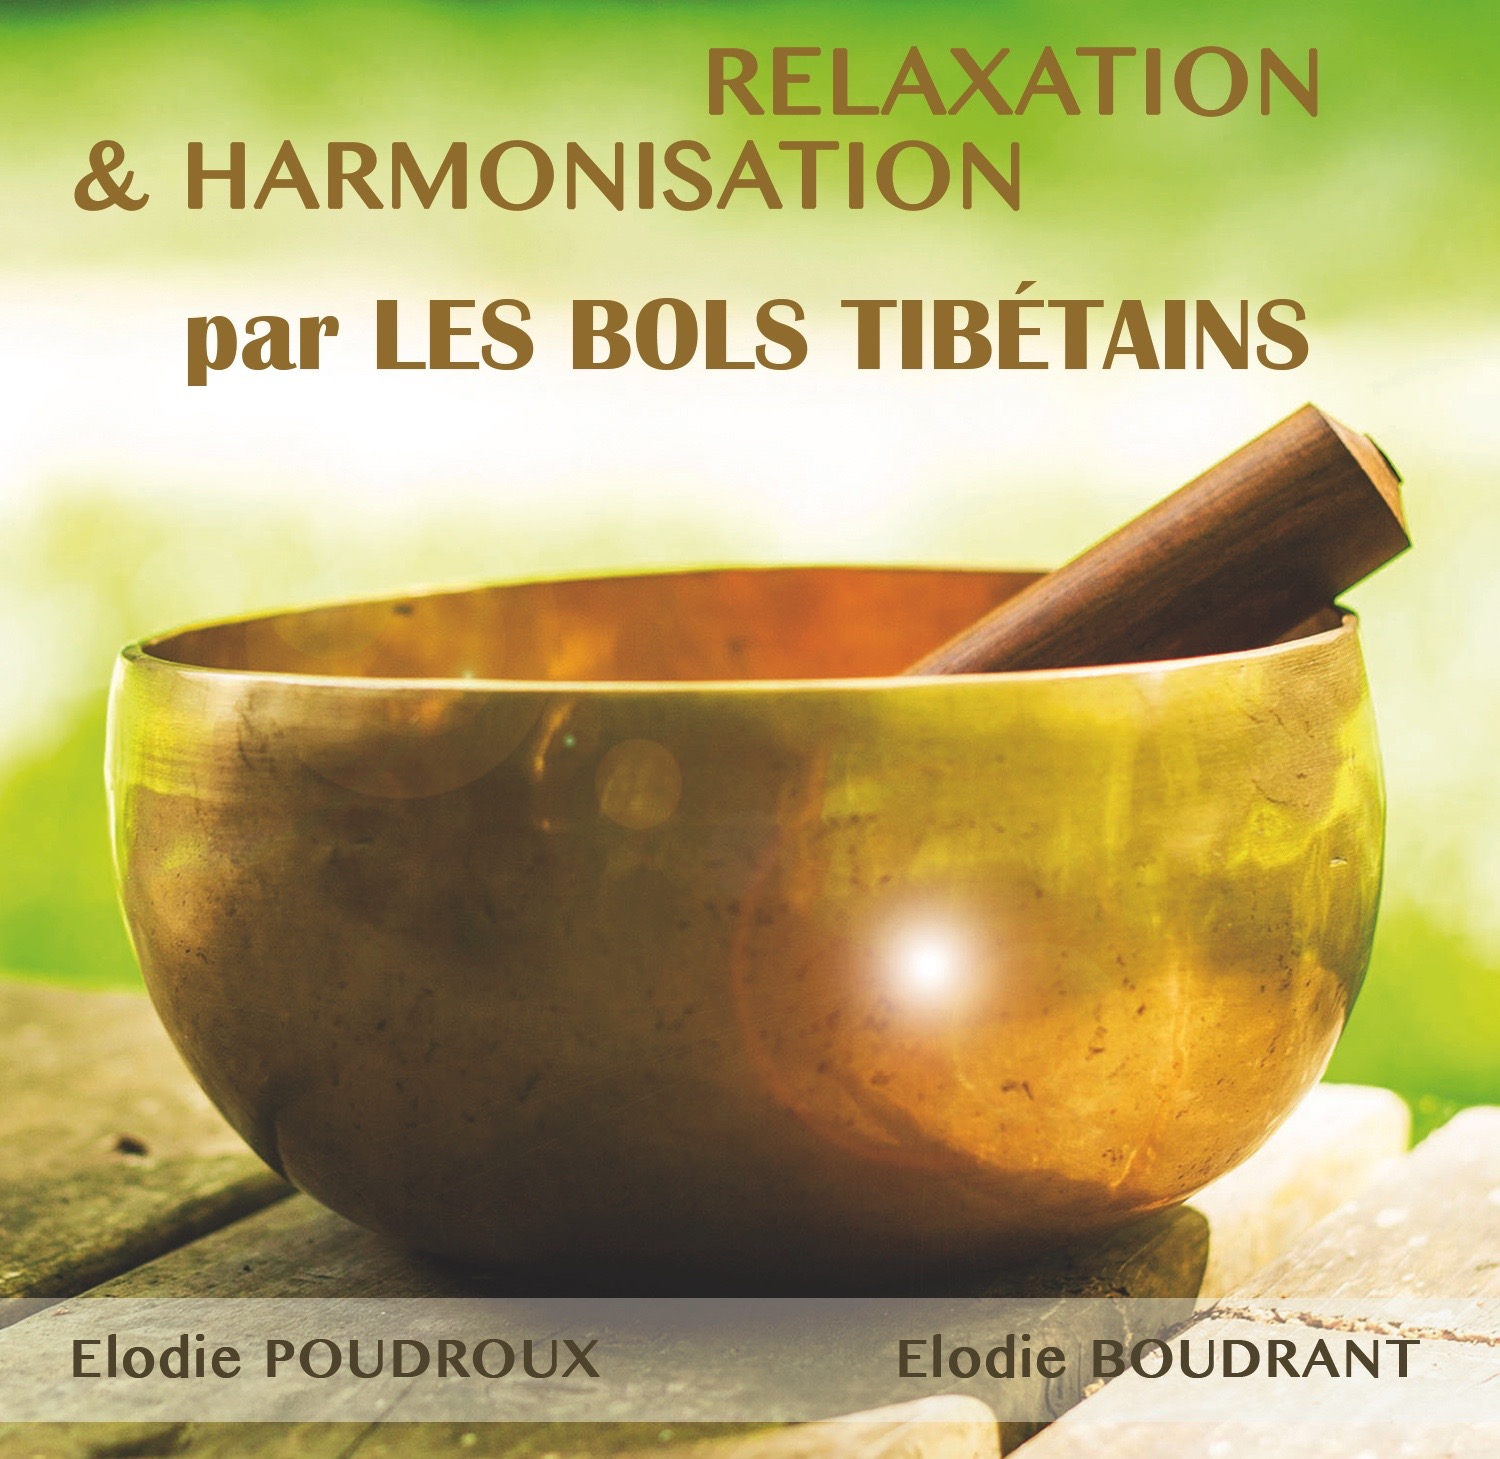 musique relaxation bols tibetains